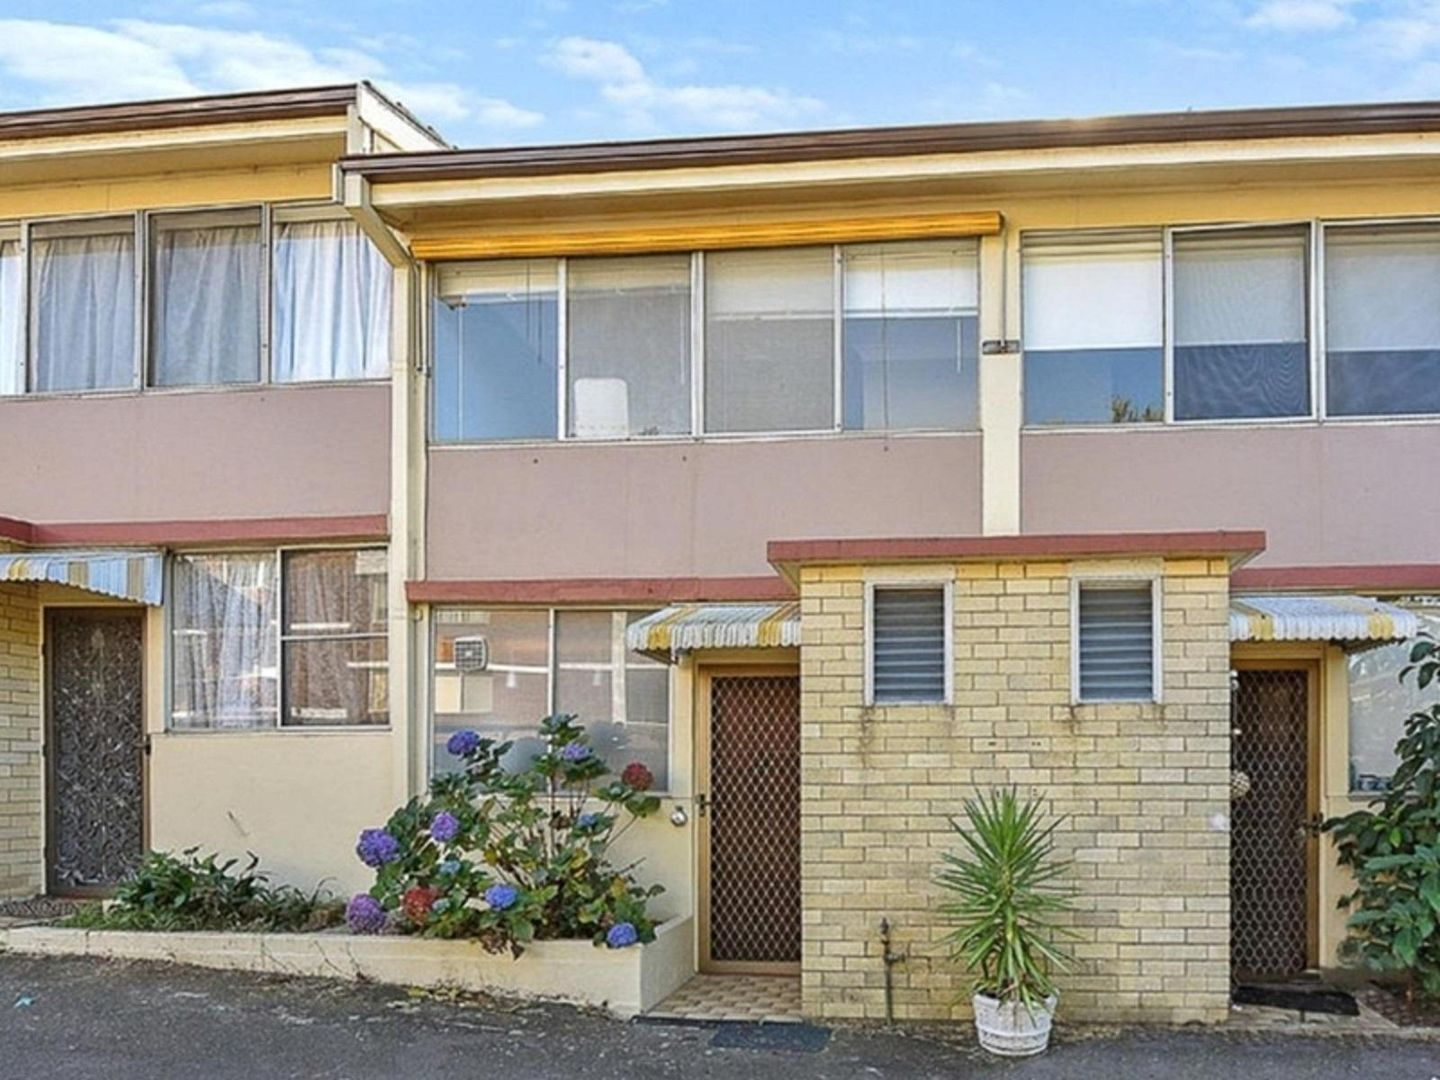 20/21 Edgeworth David Avenue, Hornsby NSW 2077, Image 1